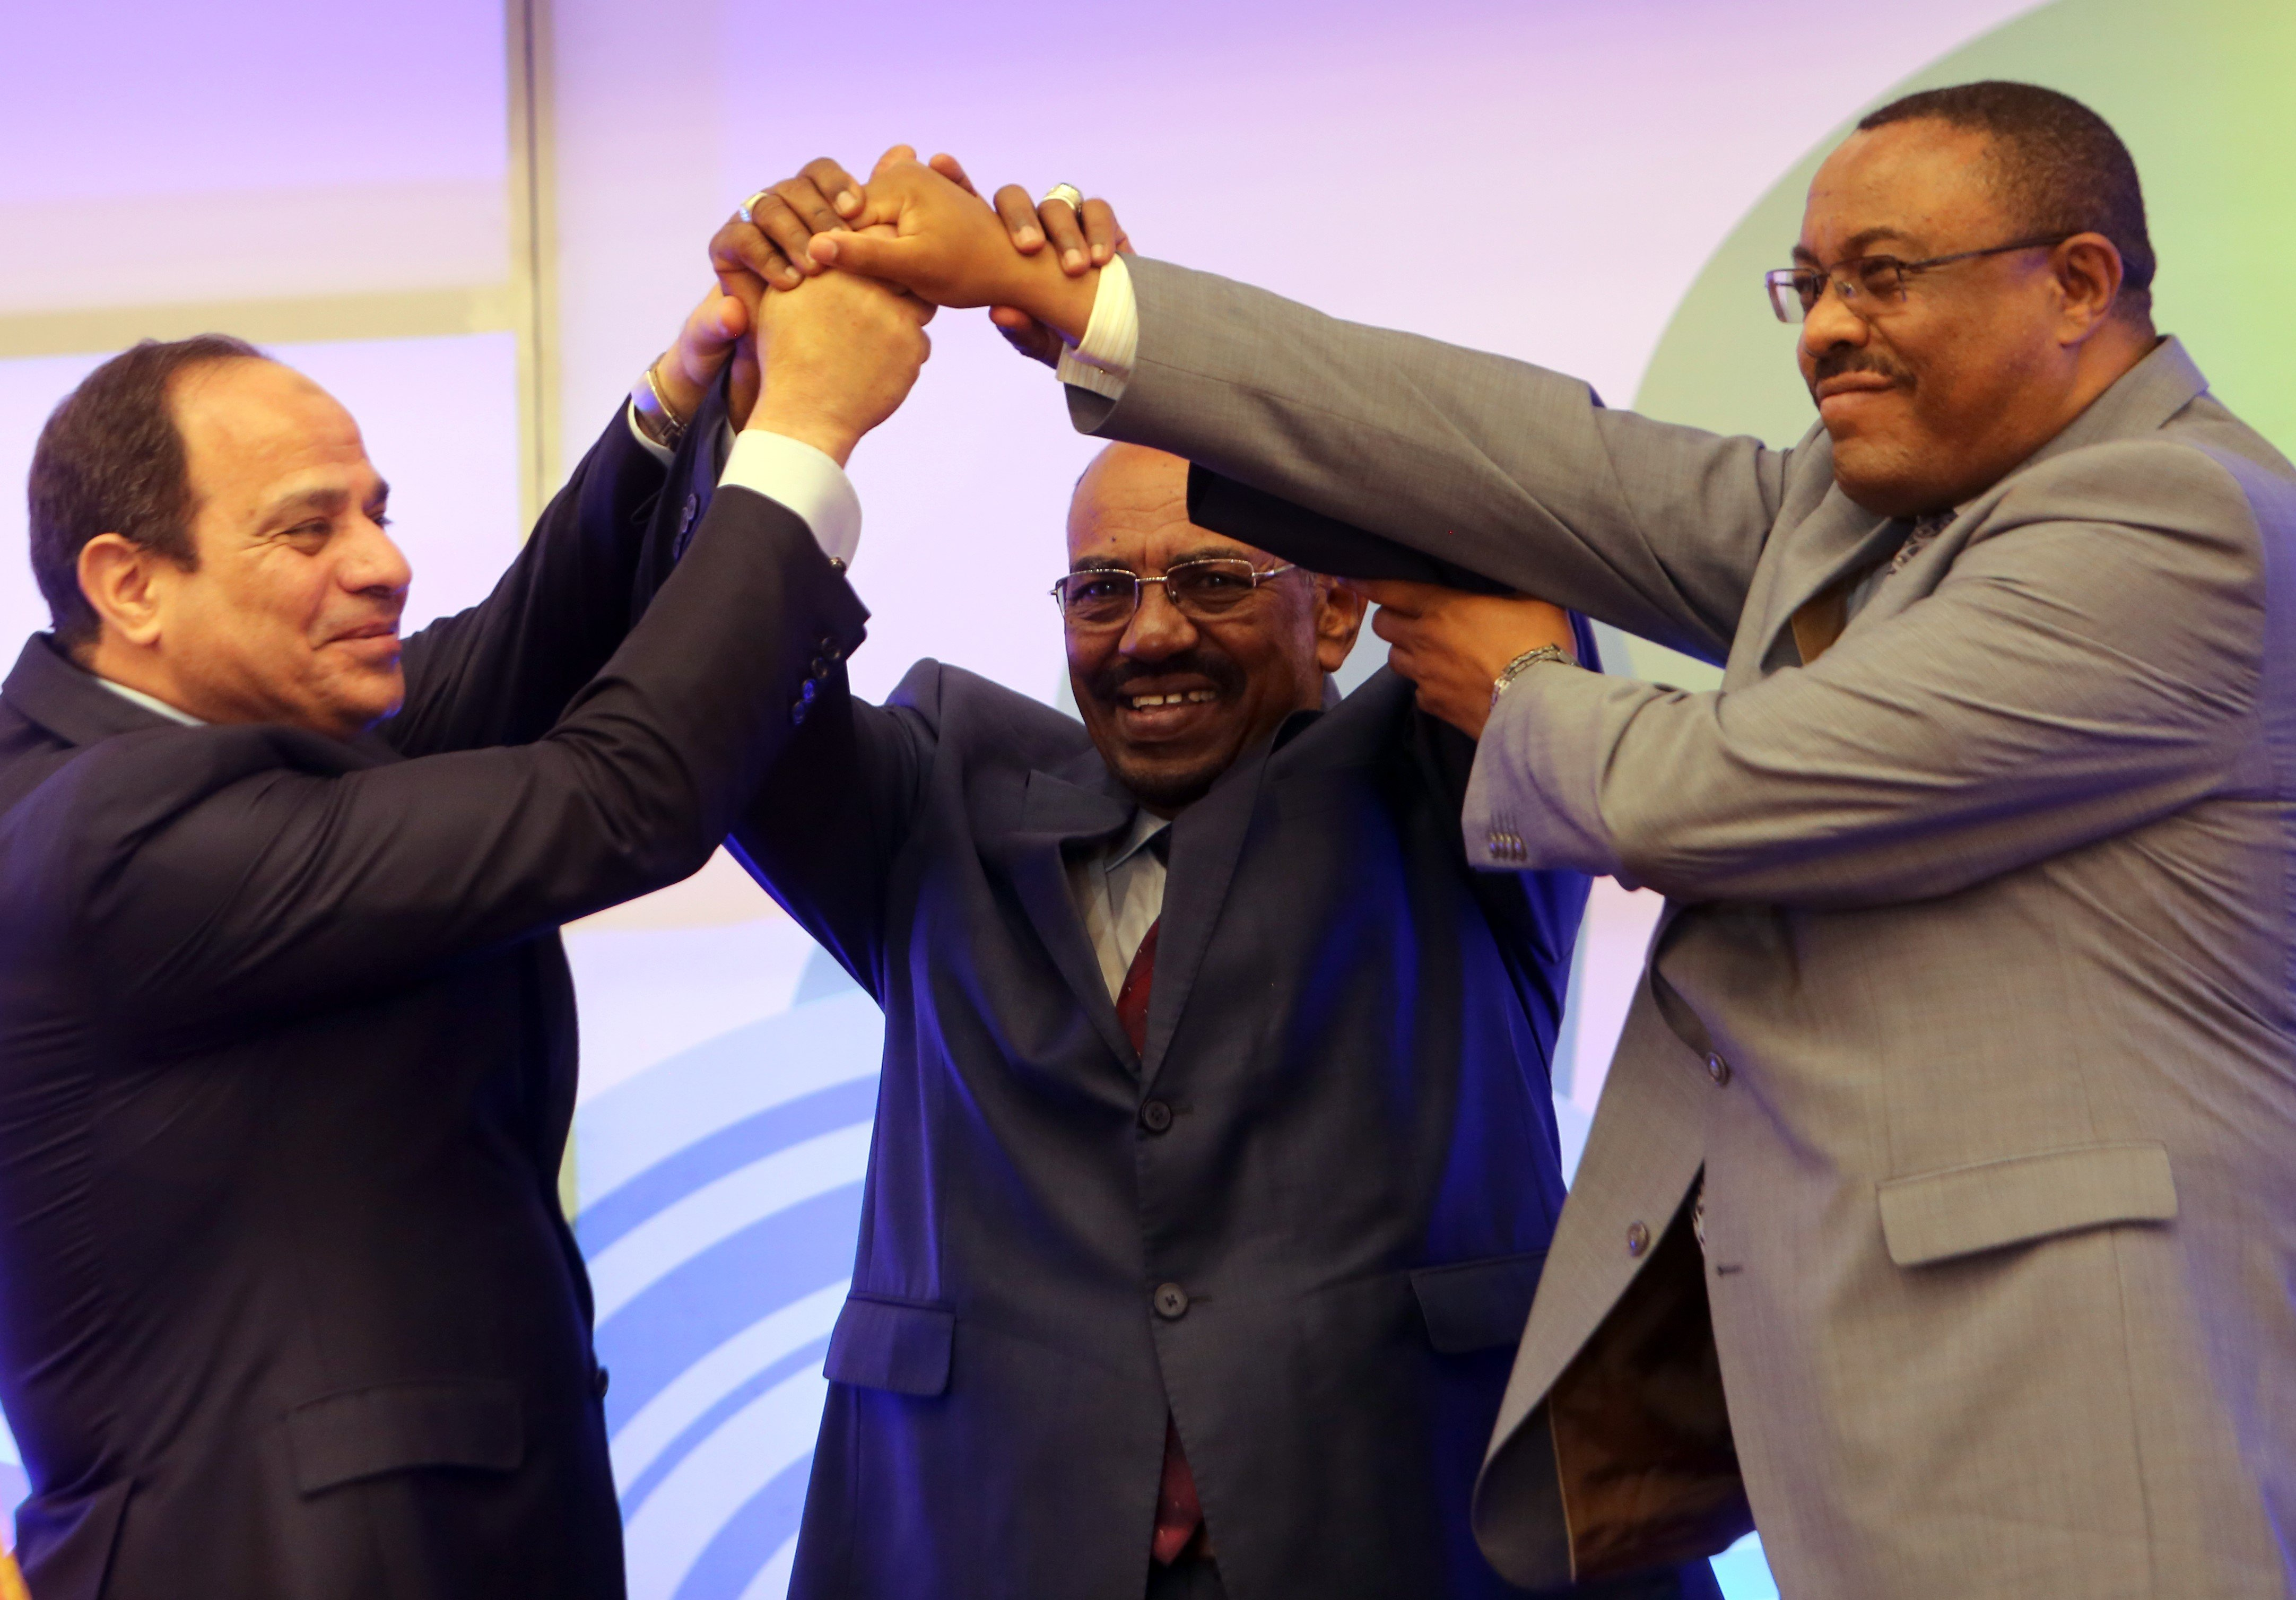 Egyptian President Abdel-Fattah al-Sisi (L), Sudanese President Omar al-Bashir (C) and Ethiopian Prime Minister Hailemariam Desalegn shake hands during a meeting in the Sudanese capital Khartoum on March 23, 2015, to sign the agreement of principles on Ethiopia's Grand Renaissance dam project